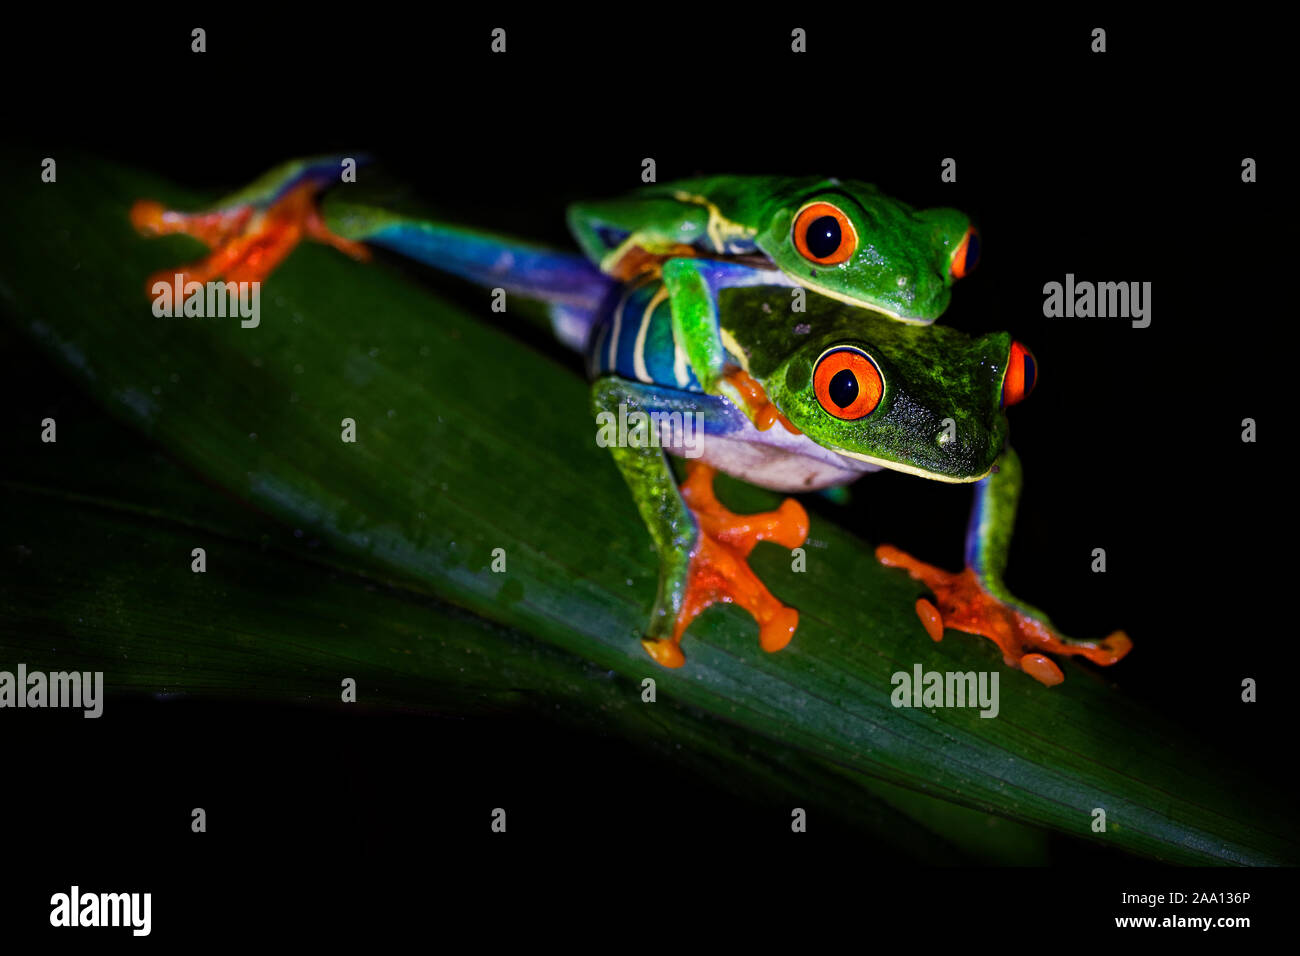 Red-eyed Tree Frog - Agalychnis callidryas arboreal hylid native to Neotropical rainforests from Mexico, Central America to Colombia, two frogs mating Stock Photo